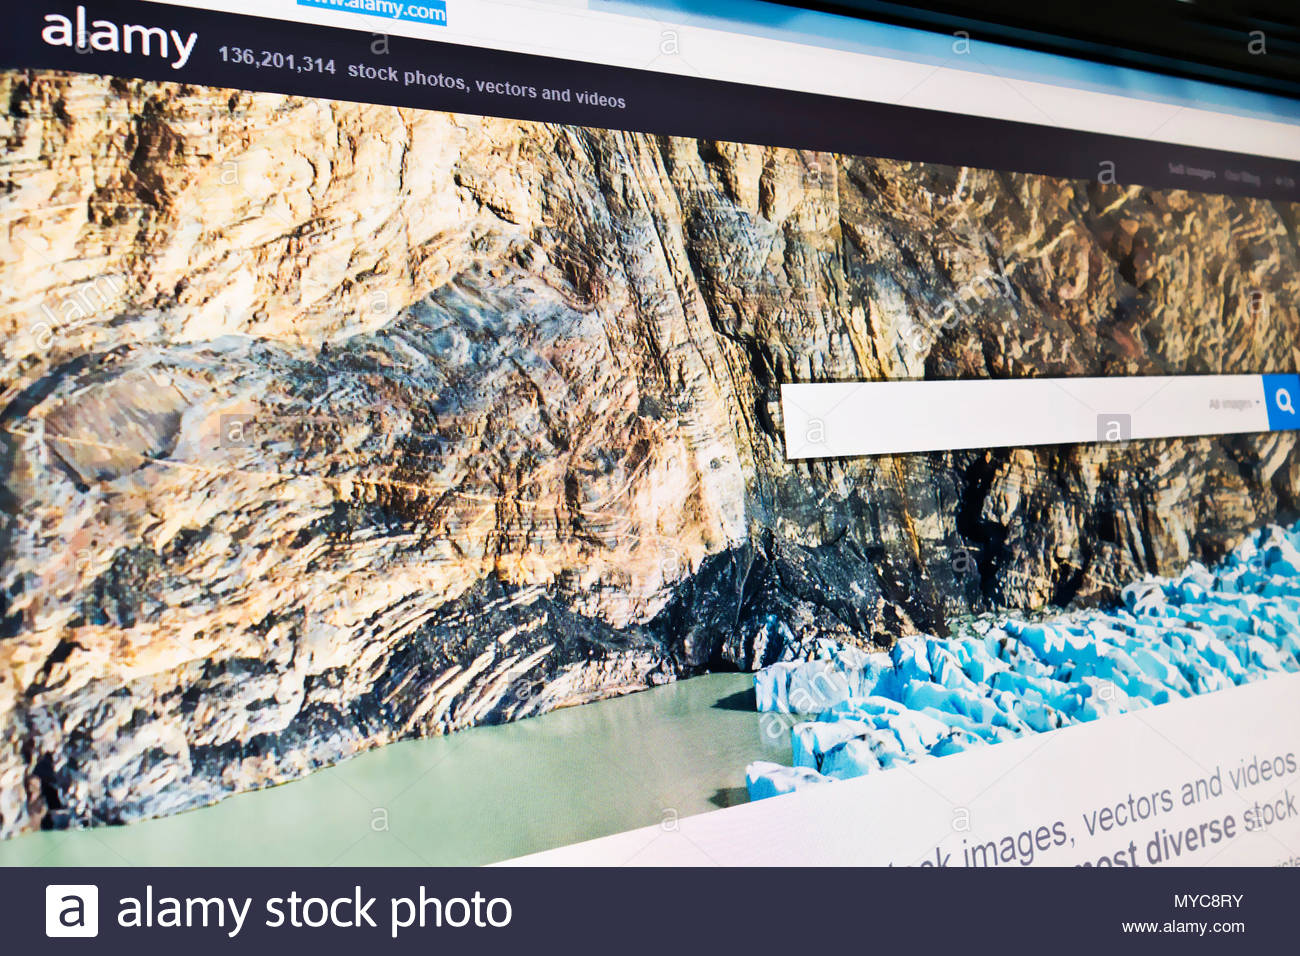 Alamy website home page screen - Stock Image